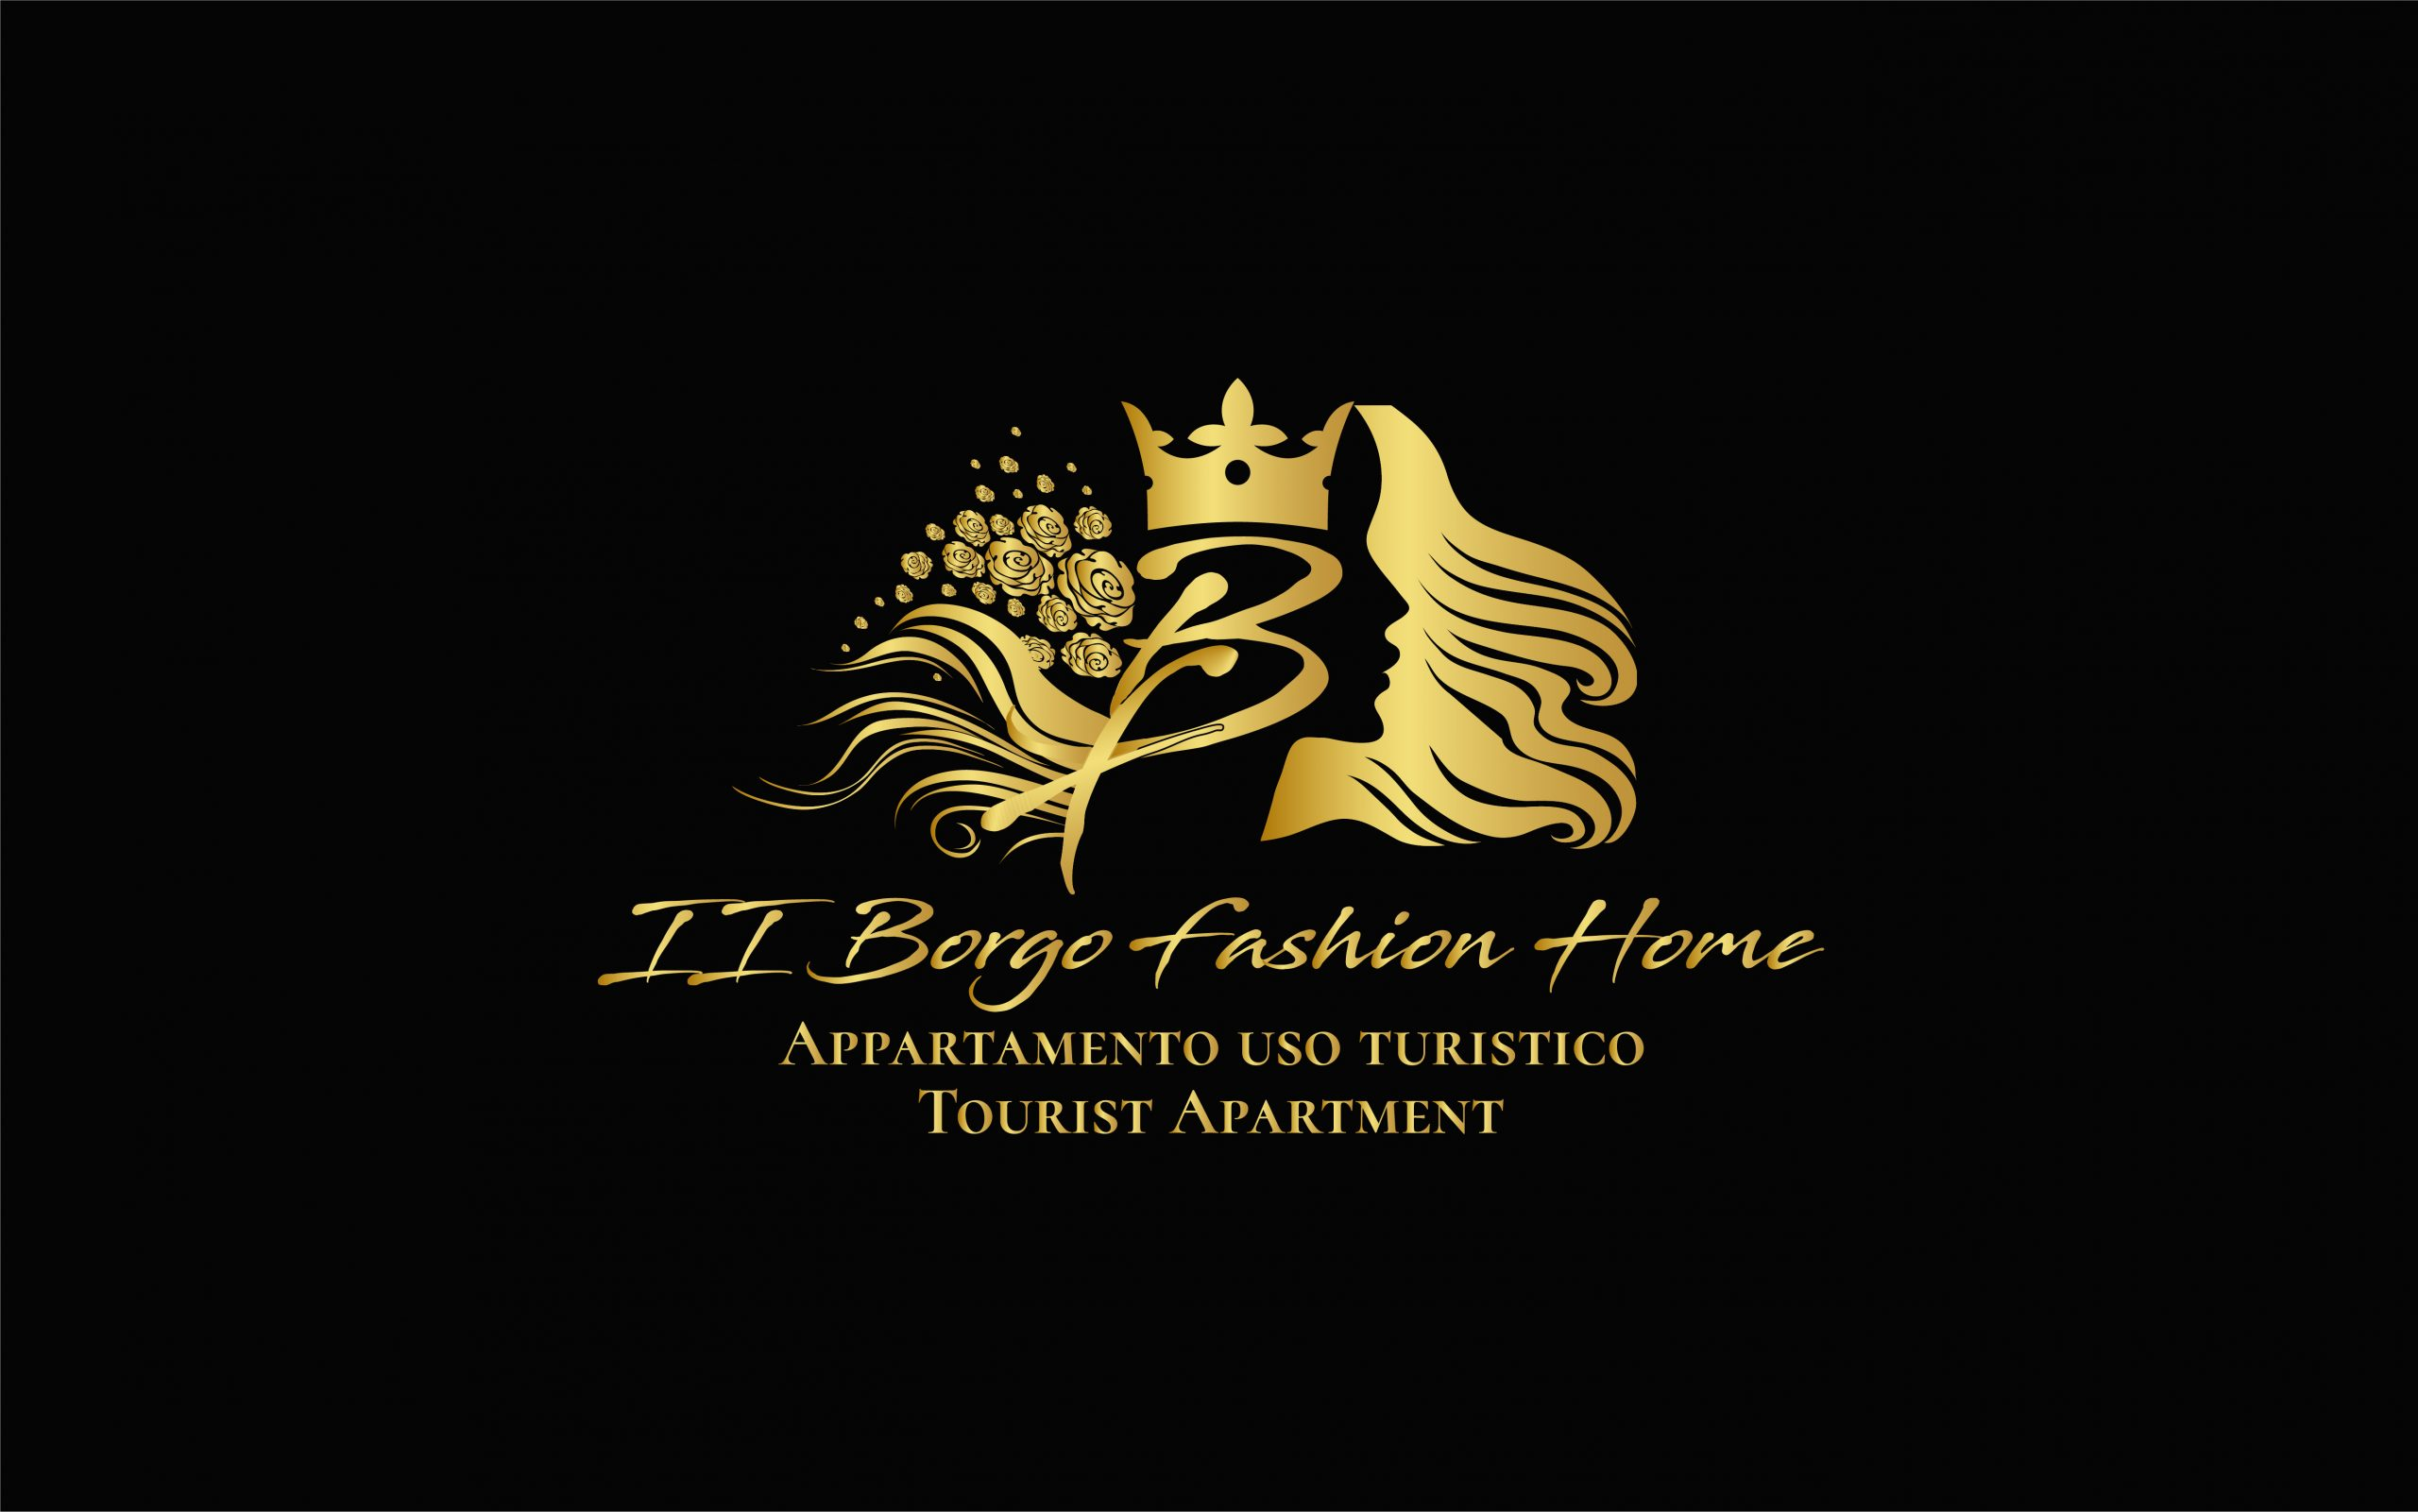 Il Borgo Fashion Home